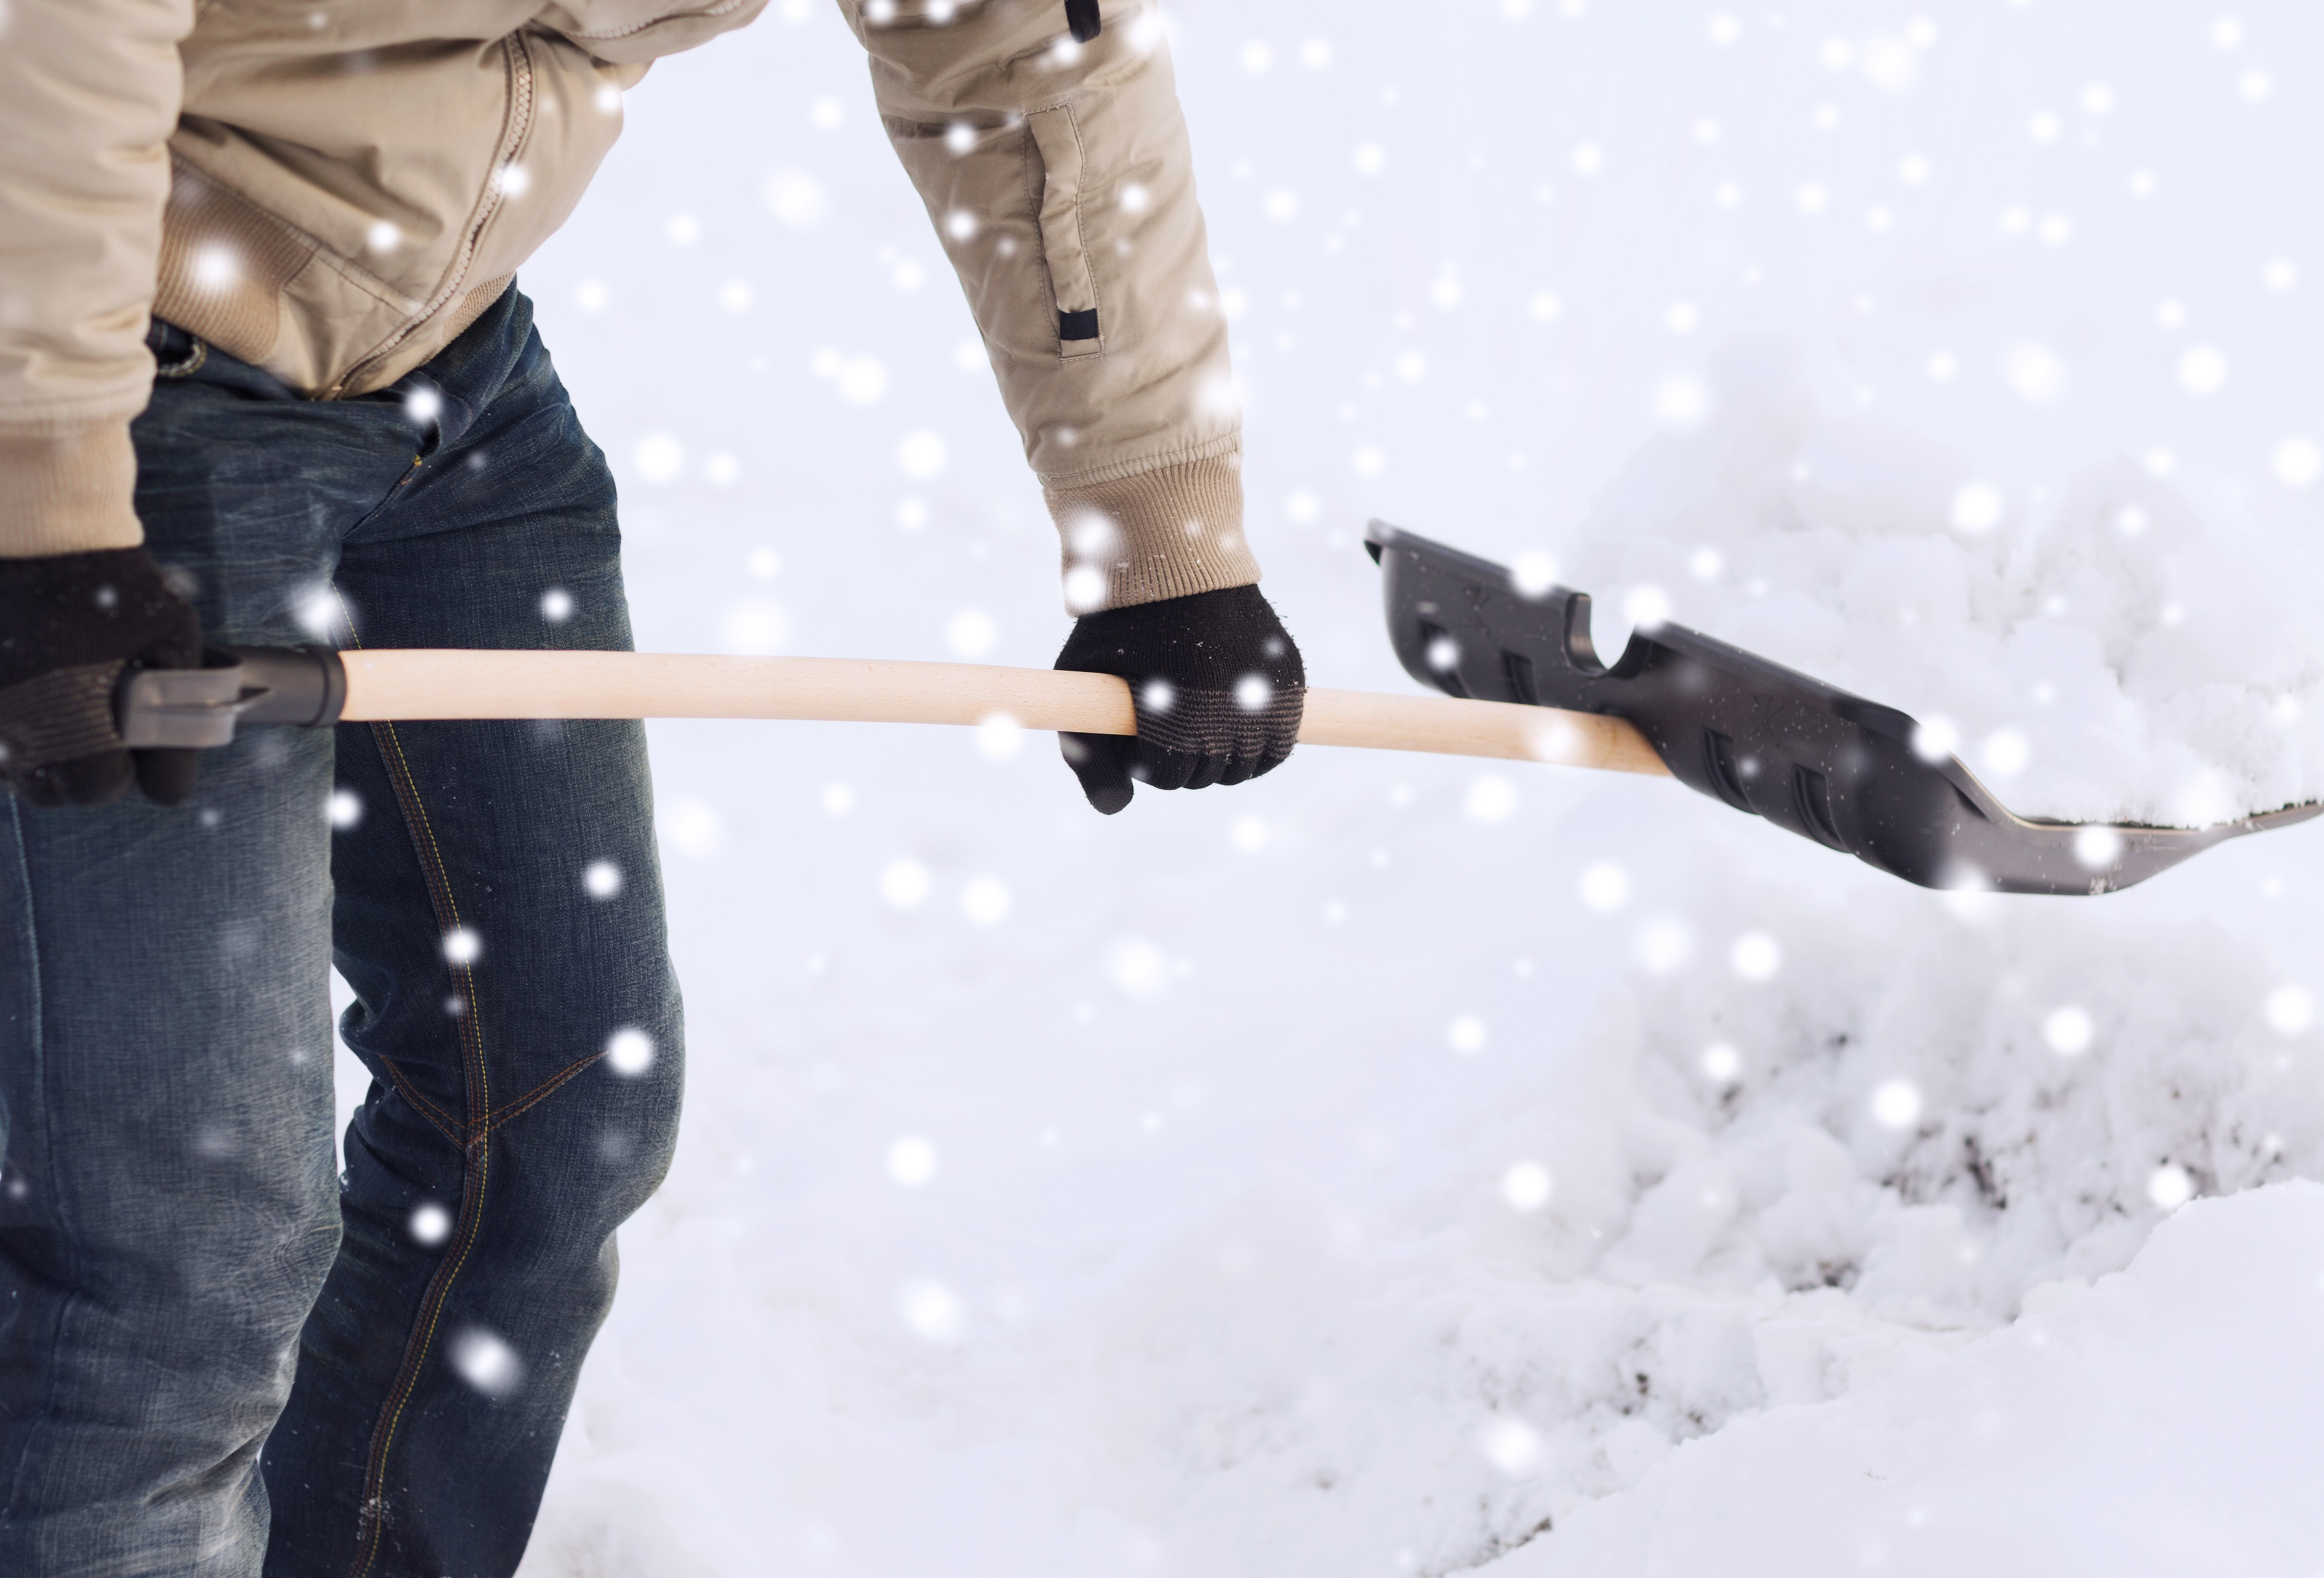 Snow Shoveling in Winters